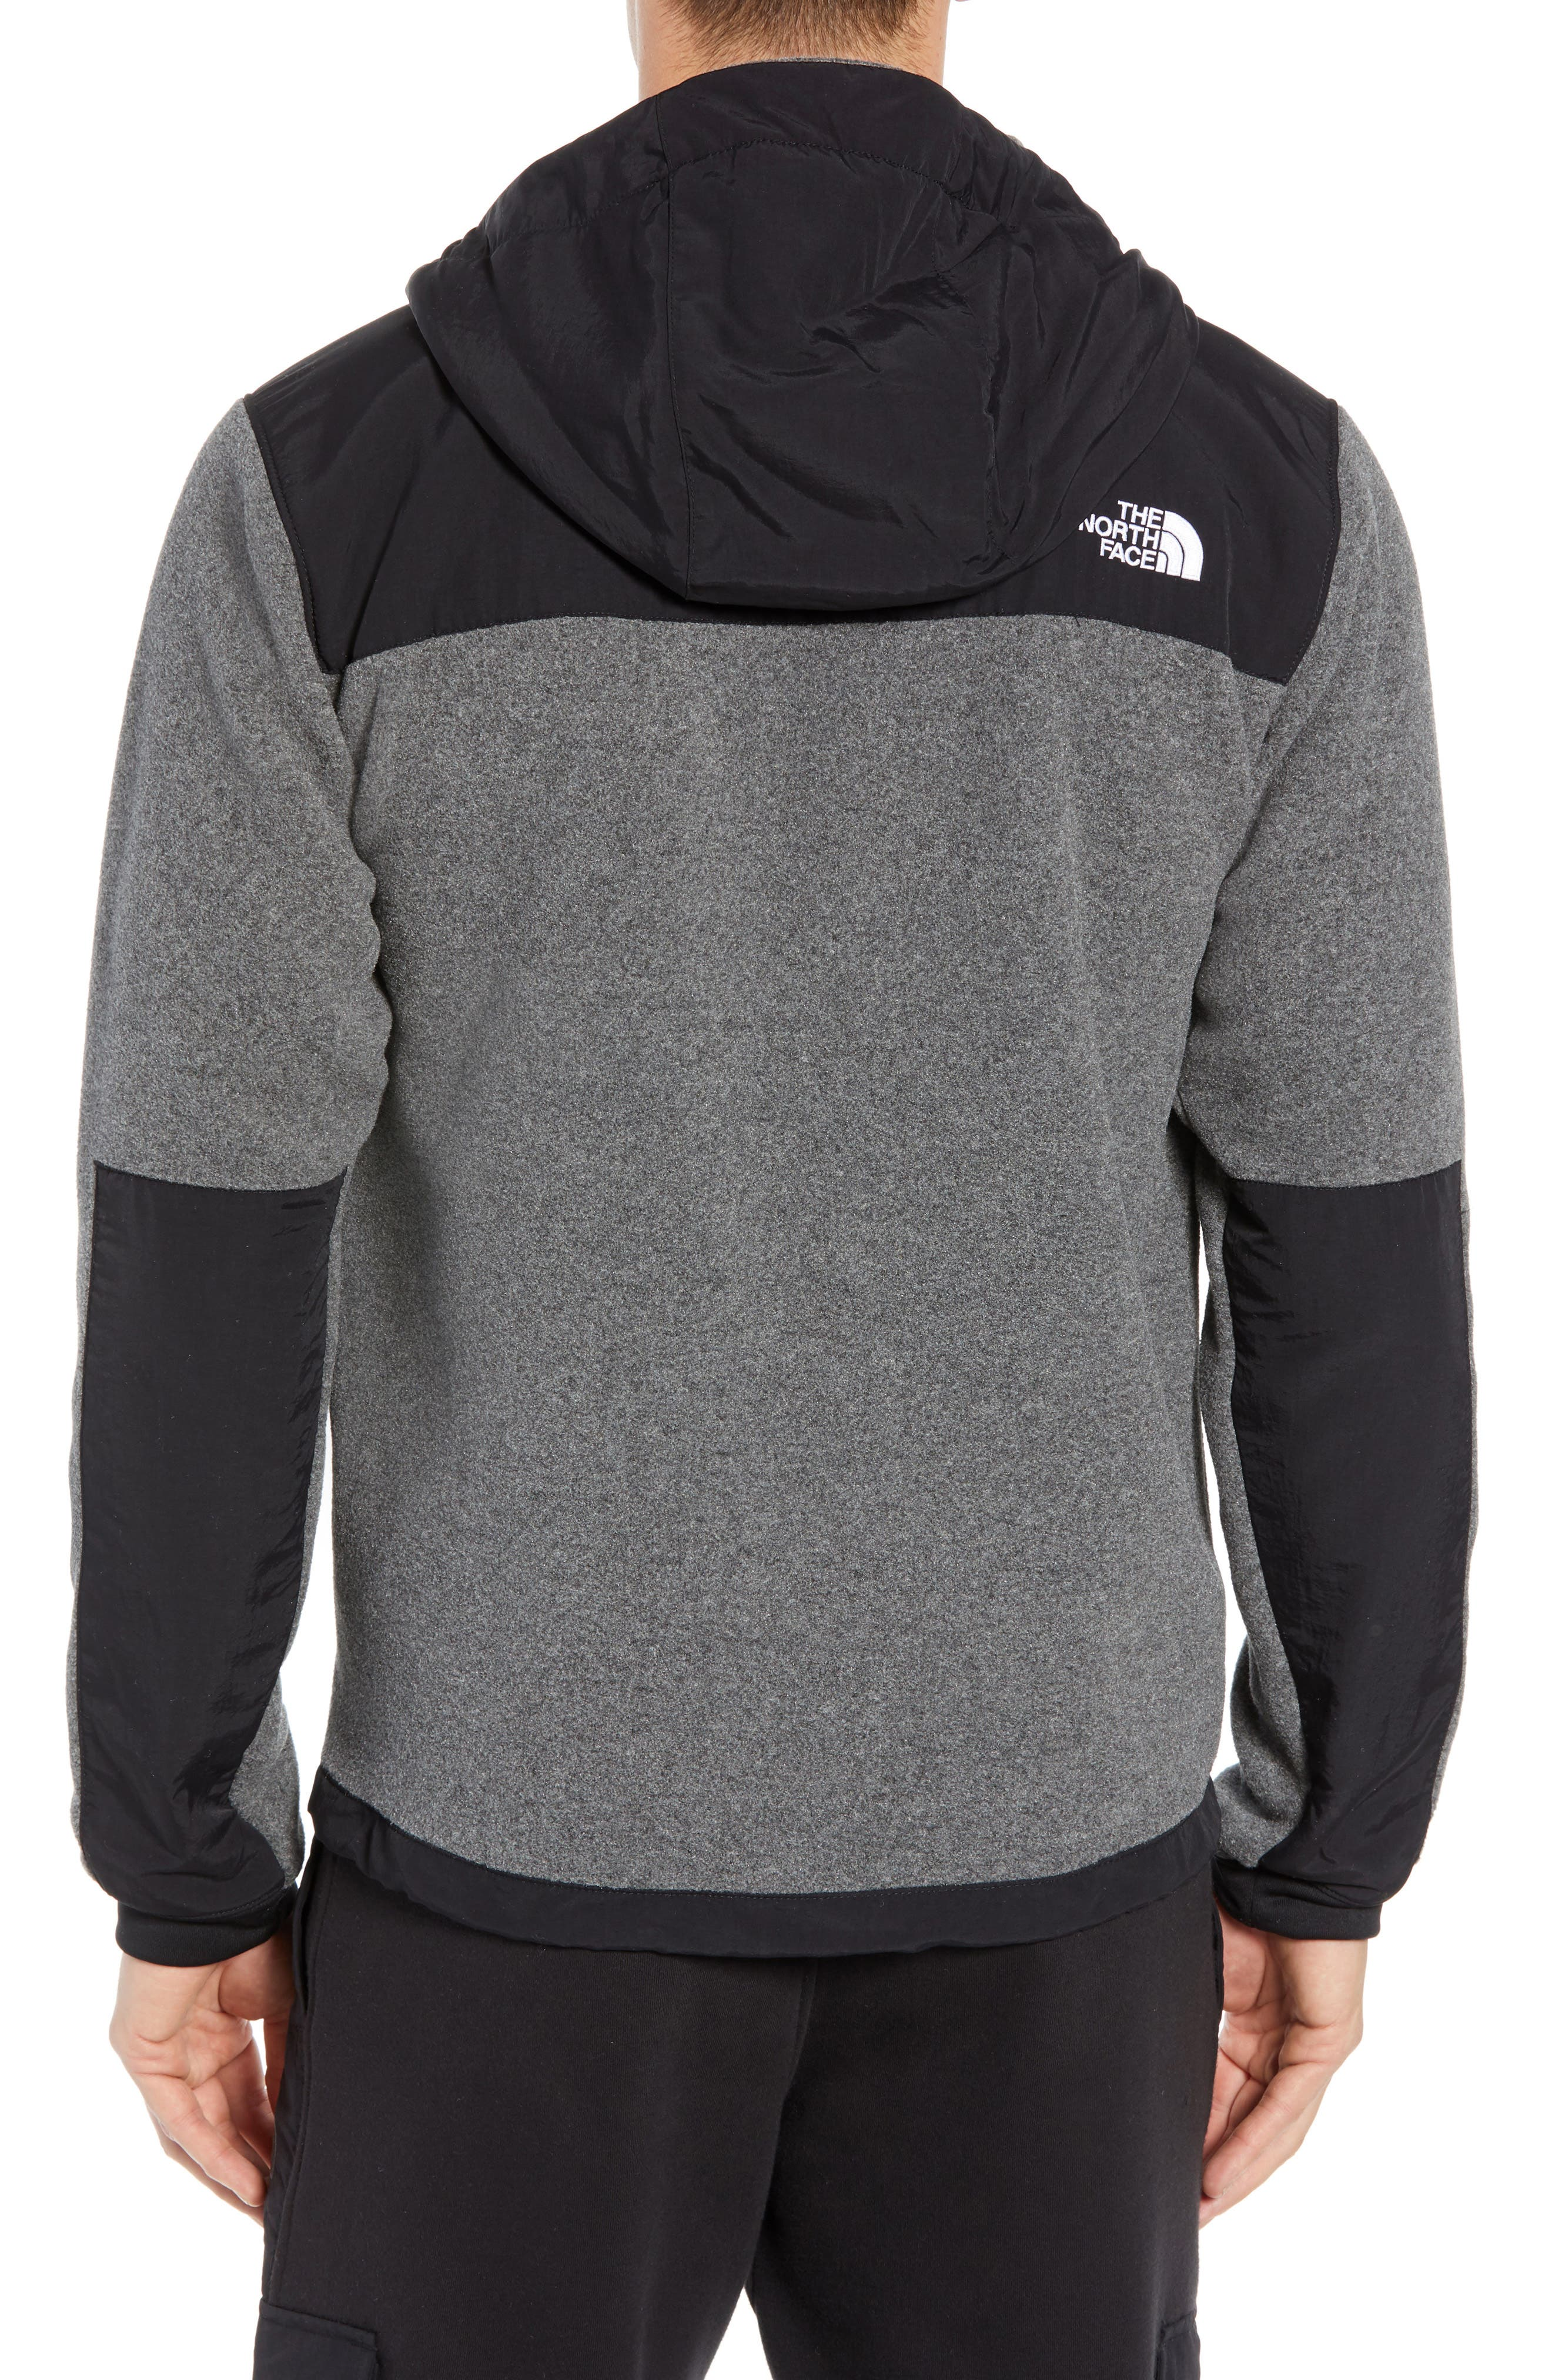 Denali 2 Hooded Jacket,                             Alternate thumbnail 2, color,                             RECYCLED CHARCOAL GREY HEATHER